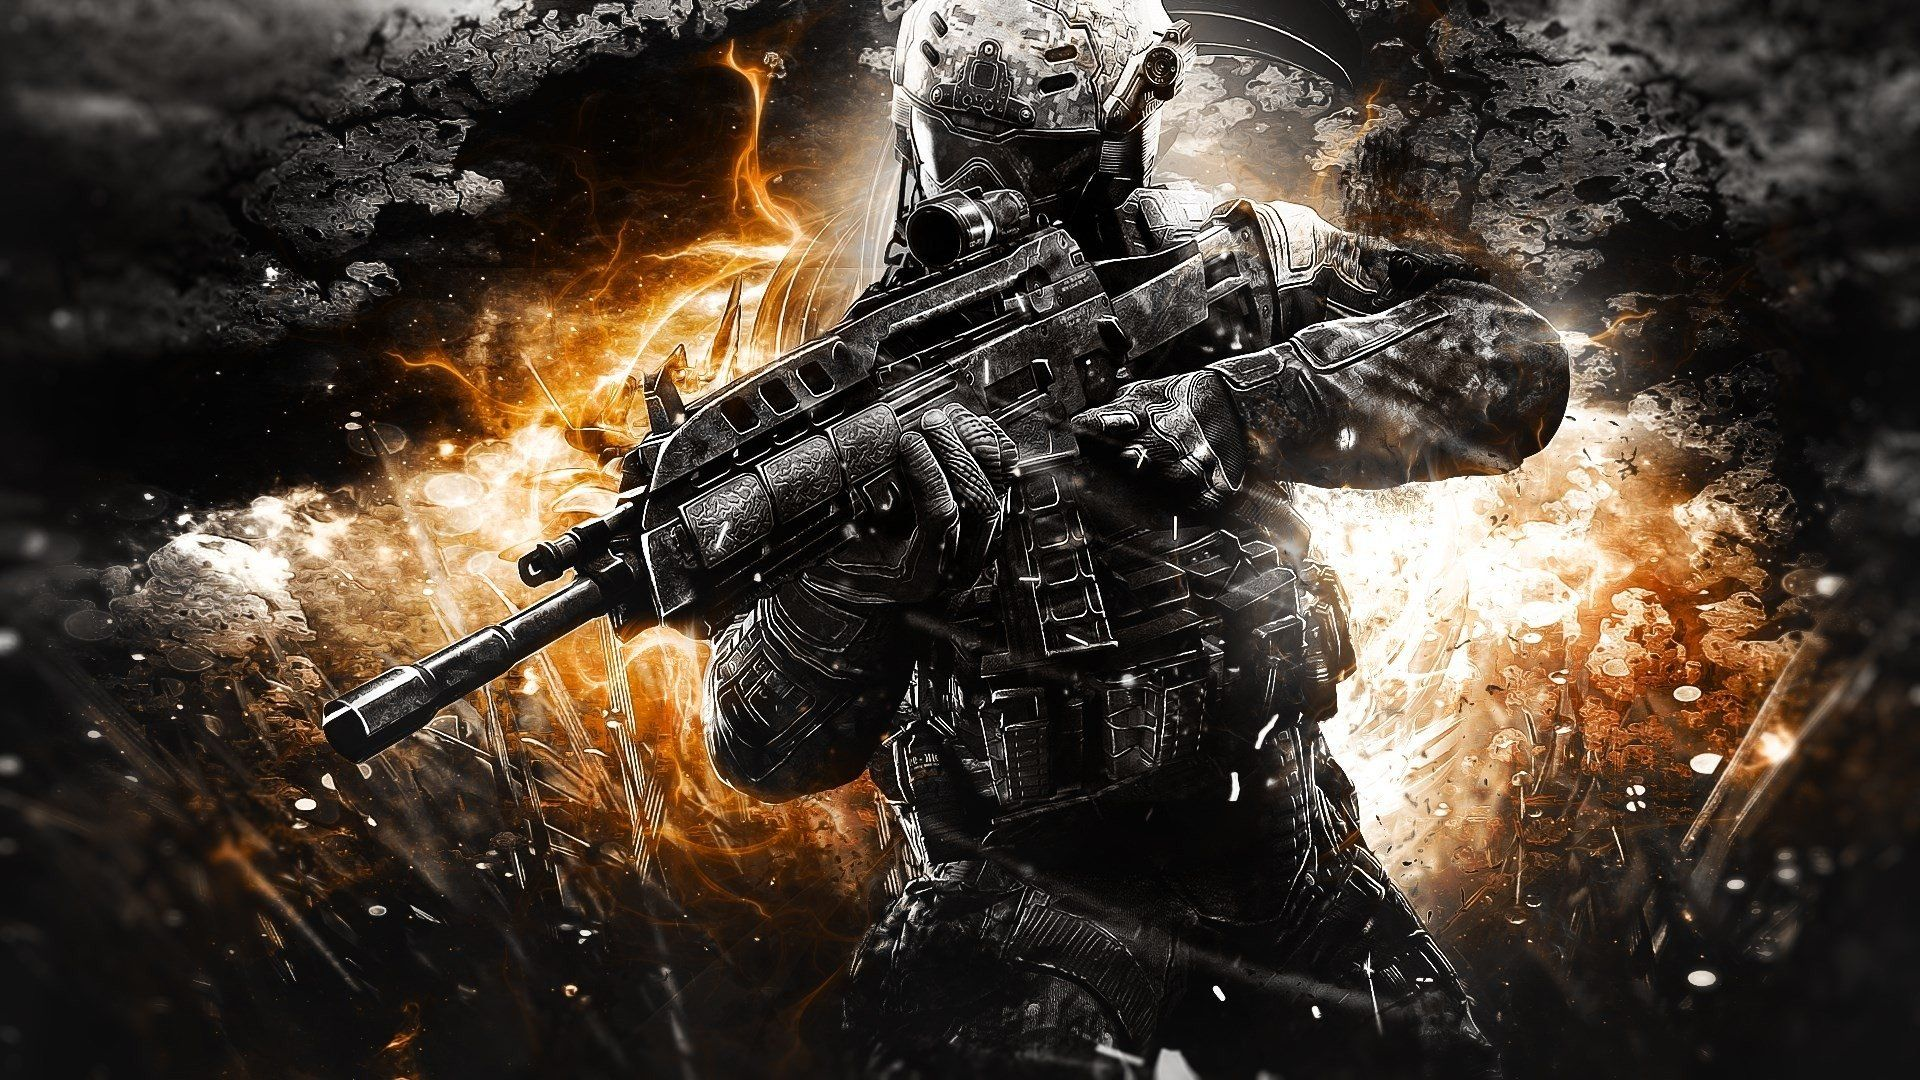 Pc Call Of Duty Black Ops Awesome Wallpapers Call Of Duty Black Zombie Wallpaper Call Of Duty